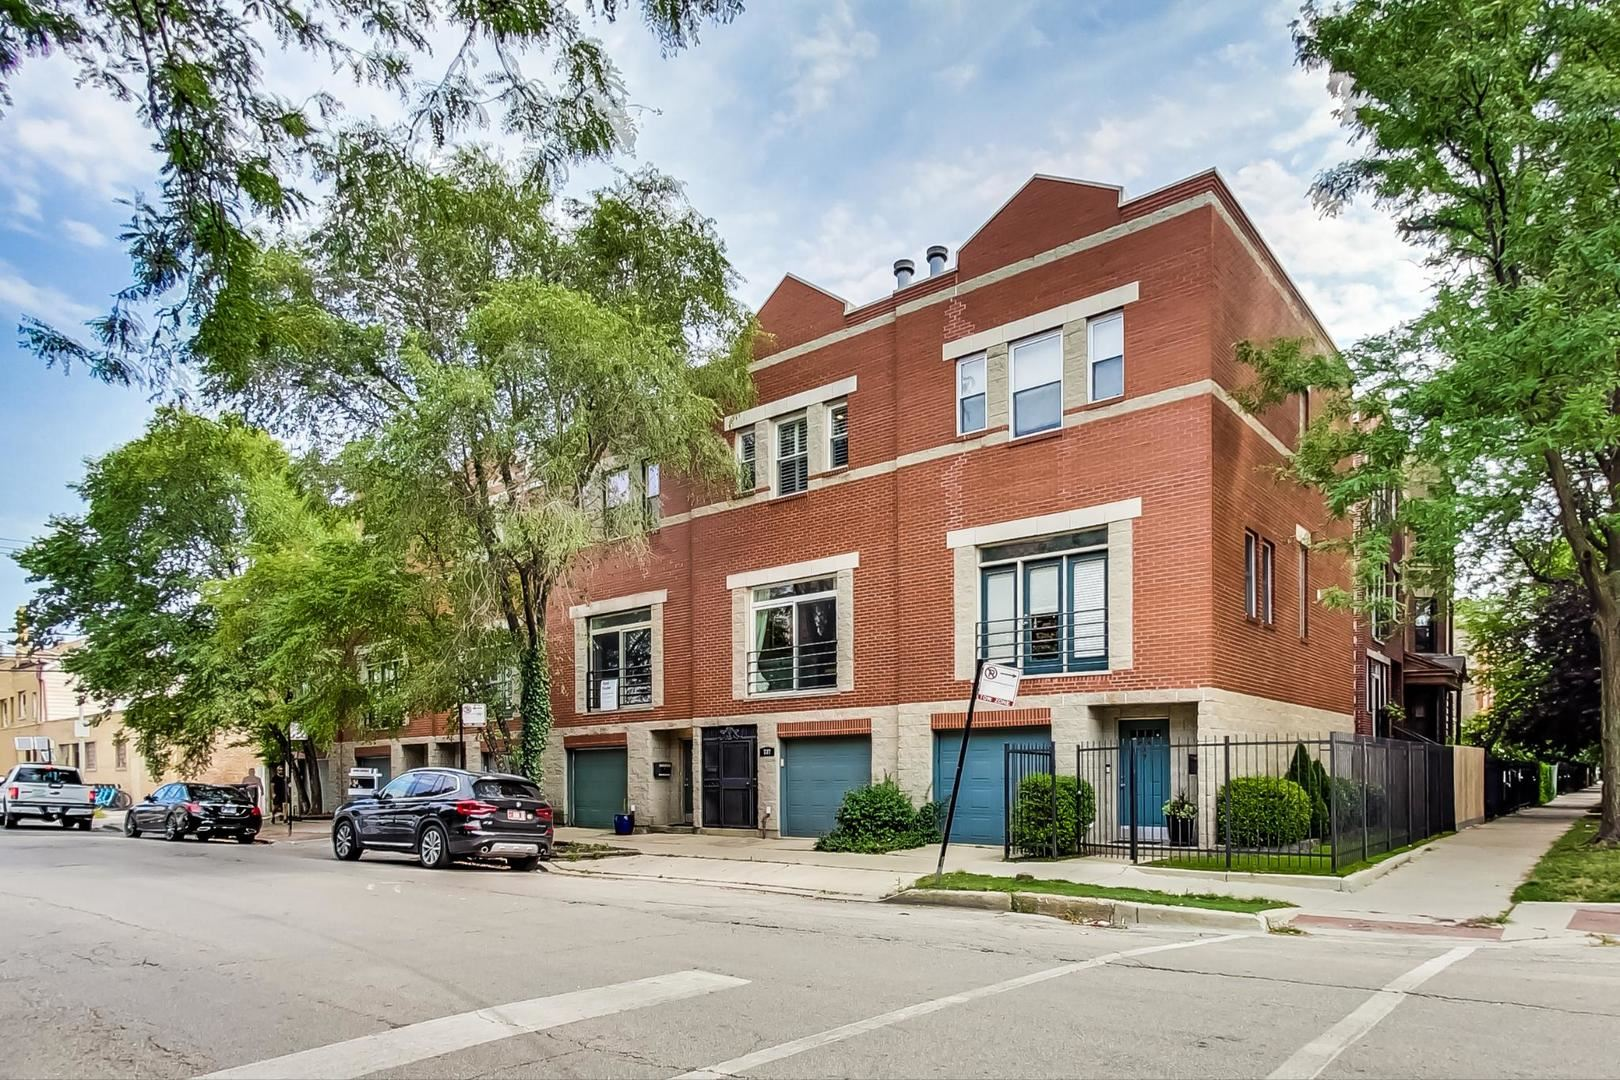 737 N Wood Street, Chicago, IL 60622 - #: 10814543